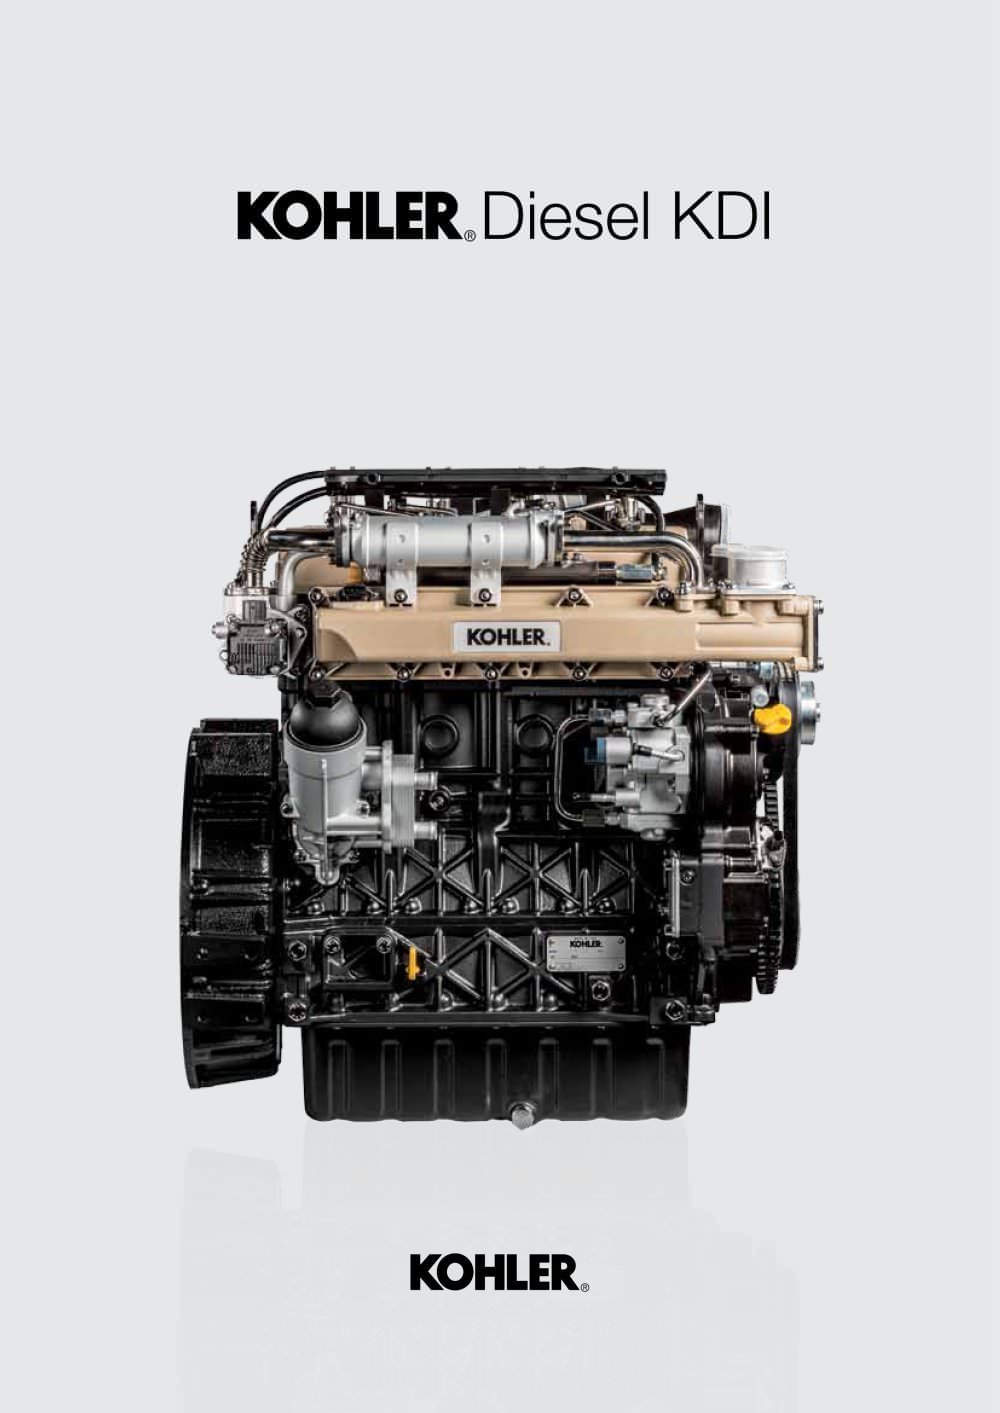 Diesel Kdi Lombardini Pdf Catalogue Technical Documentation Fuel Filter 1 16 Pages